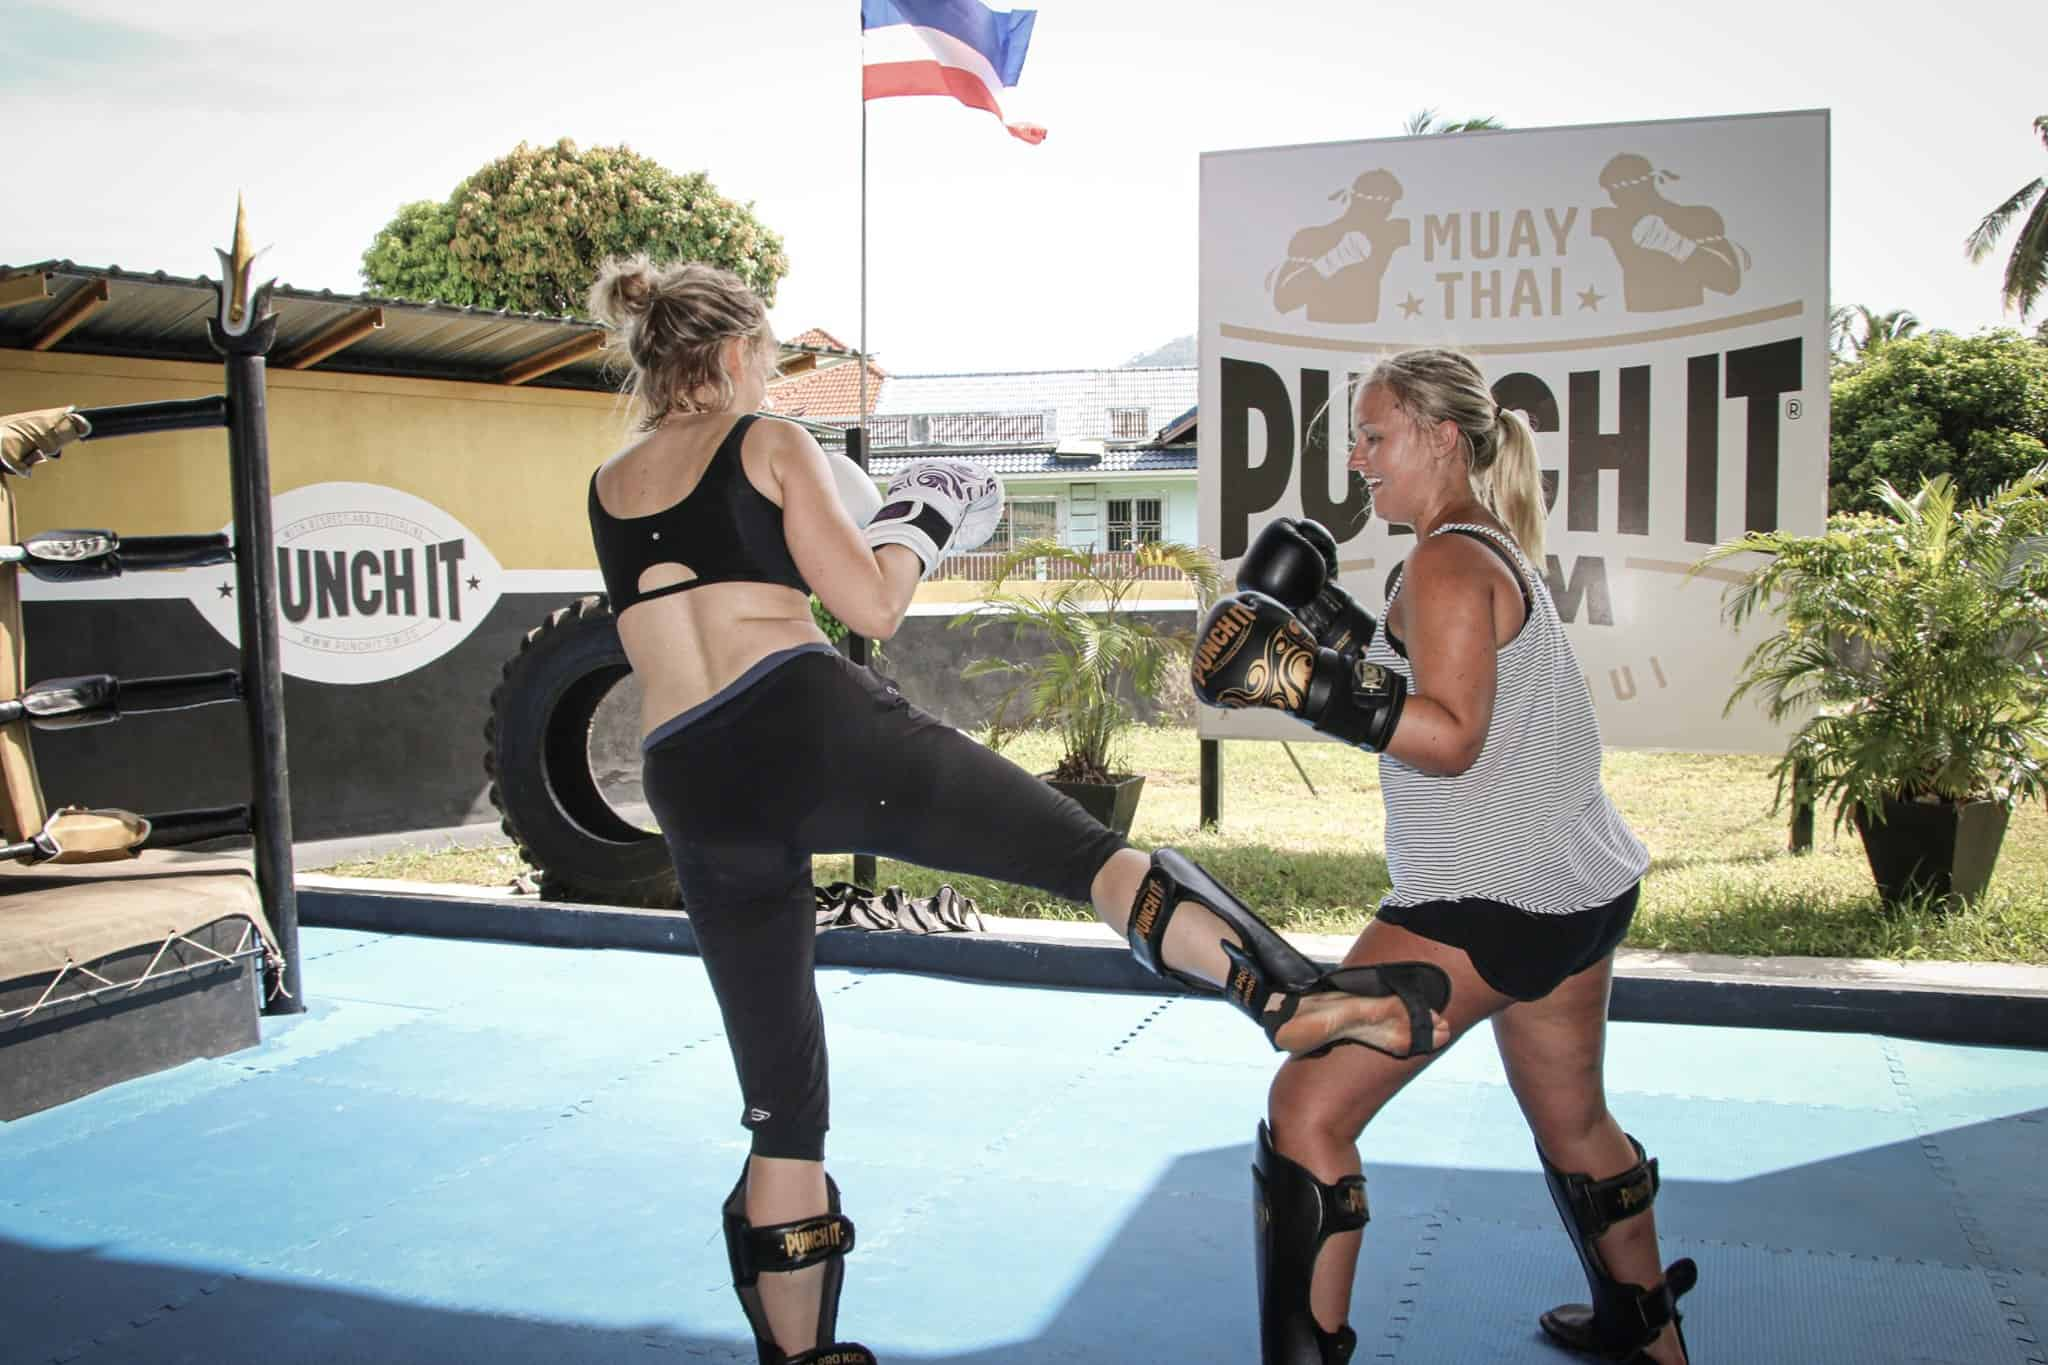 Training at Punch It Gym.